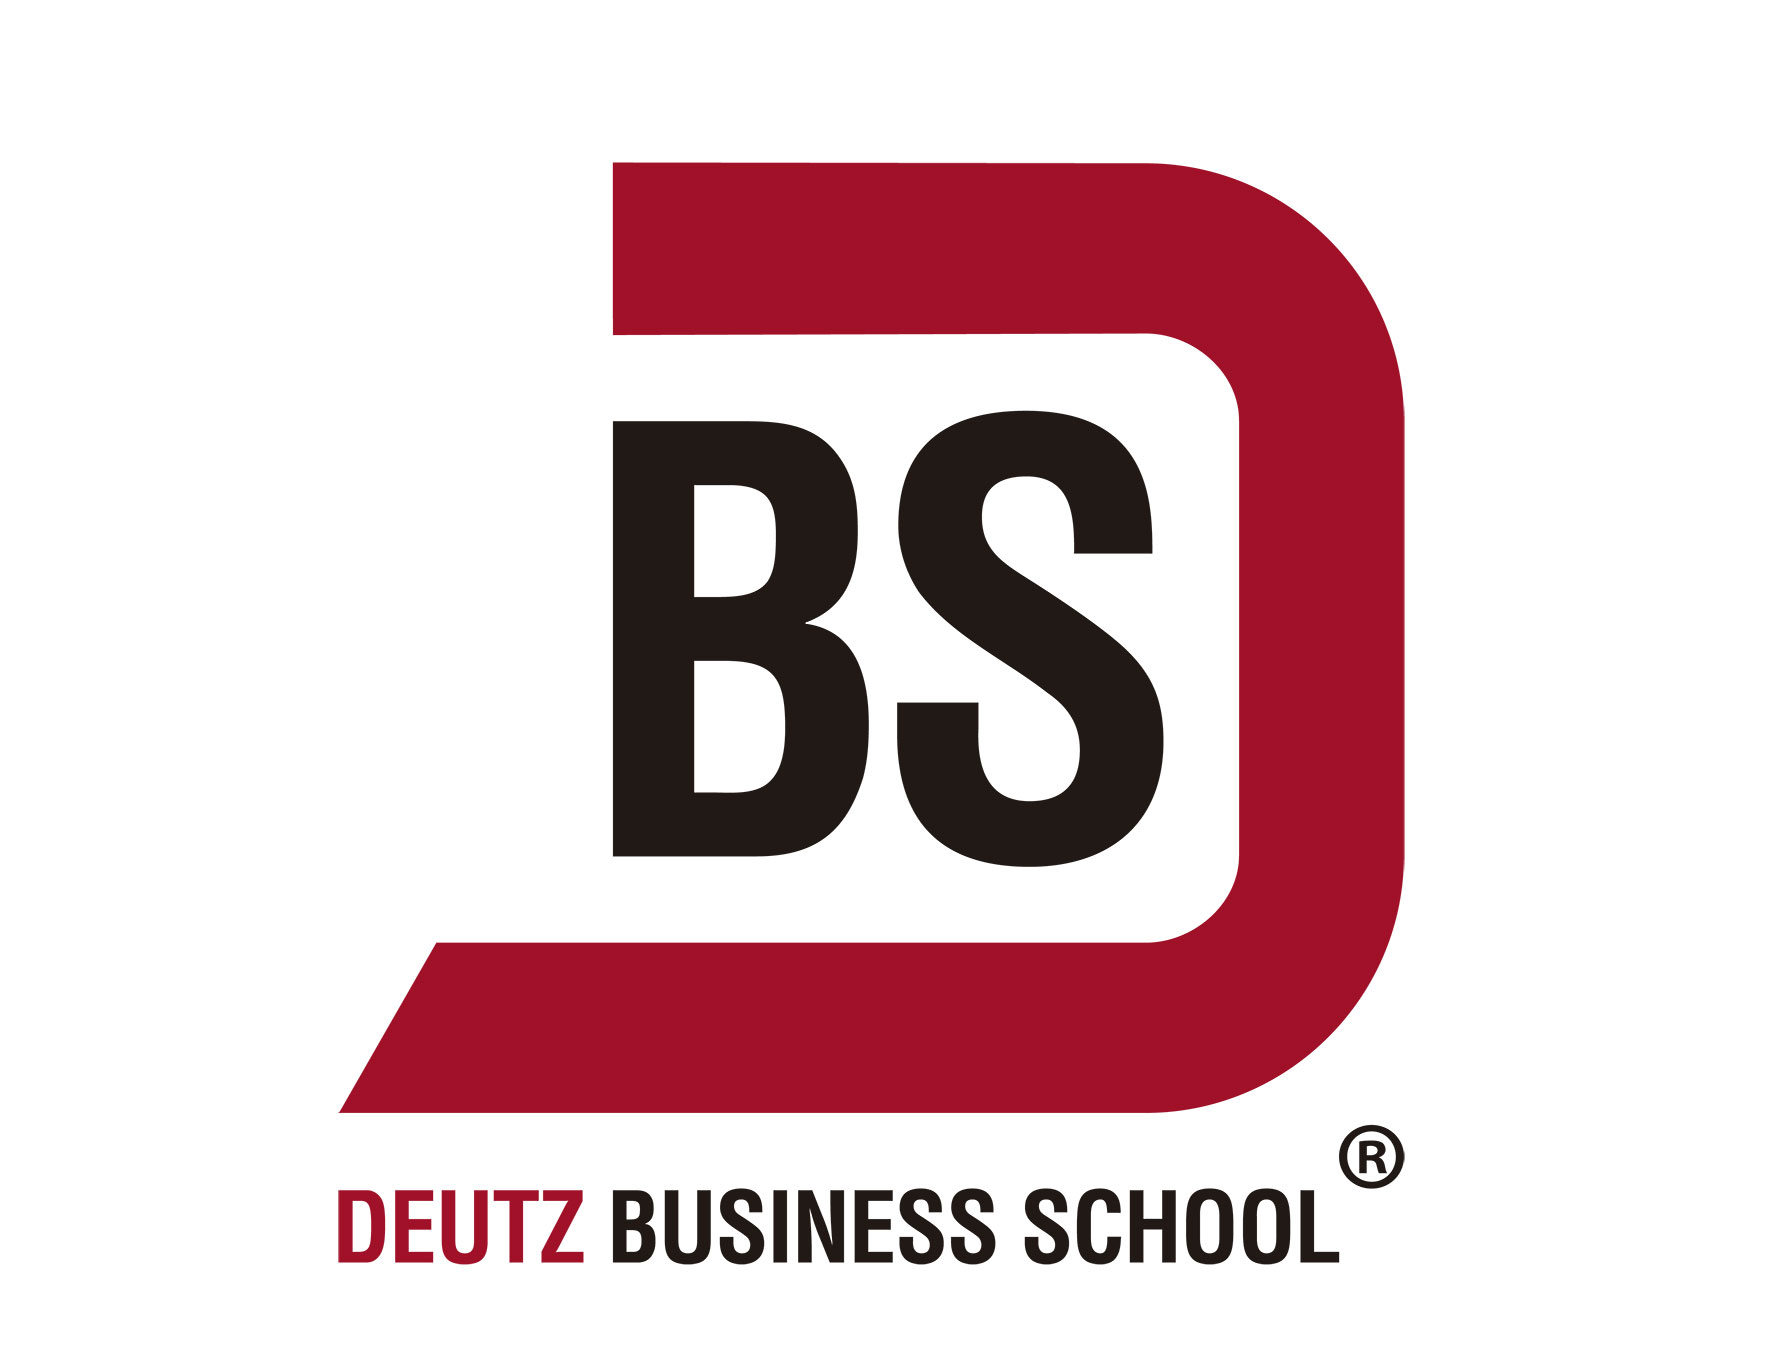 Logo Deutz Business School